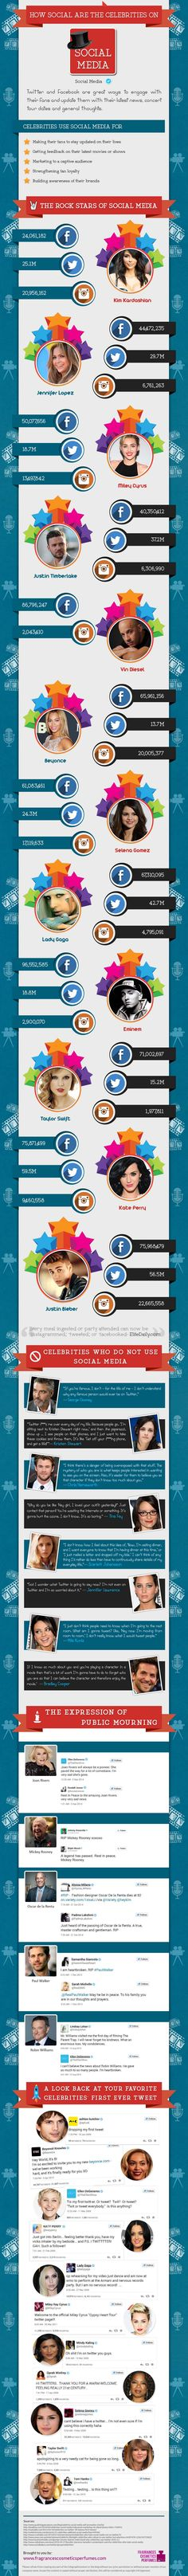 How Social are the Celebrities on Social Media #infographic #SocialMedia #Celebrities